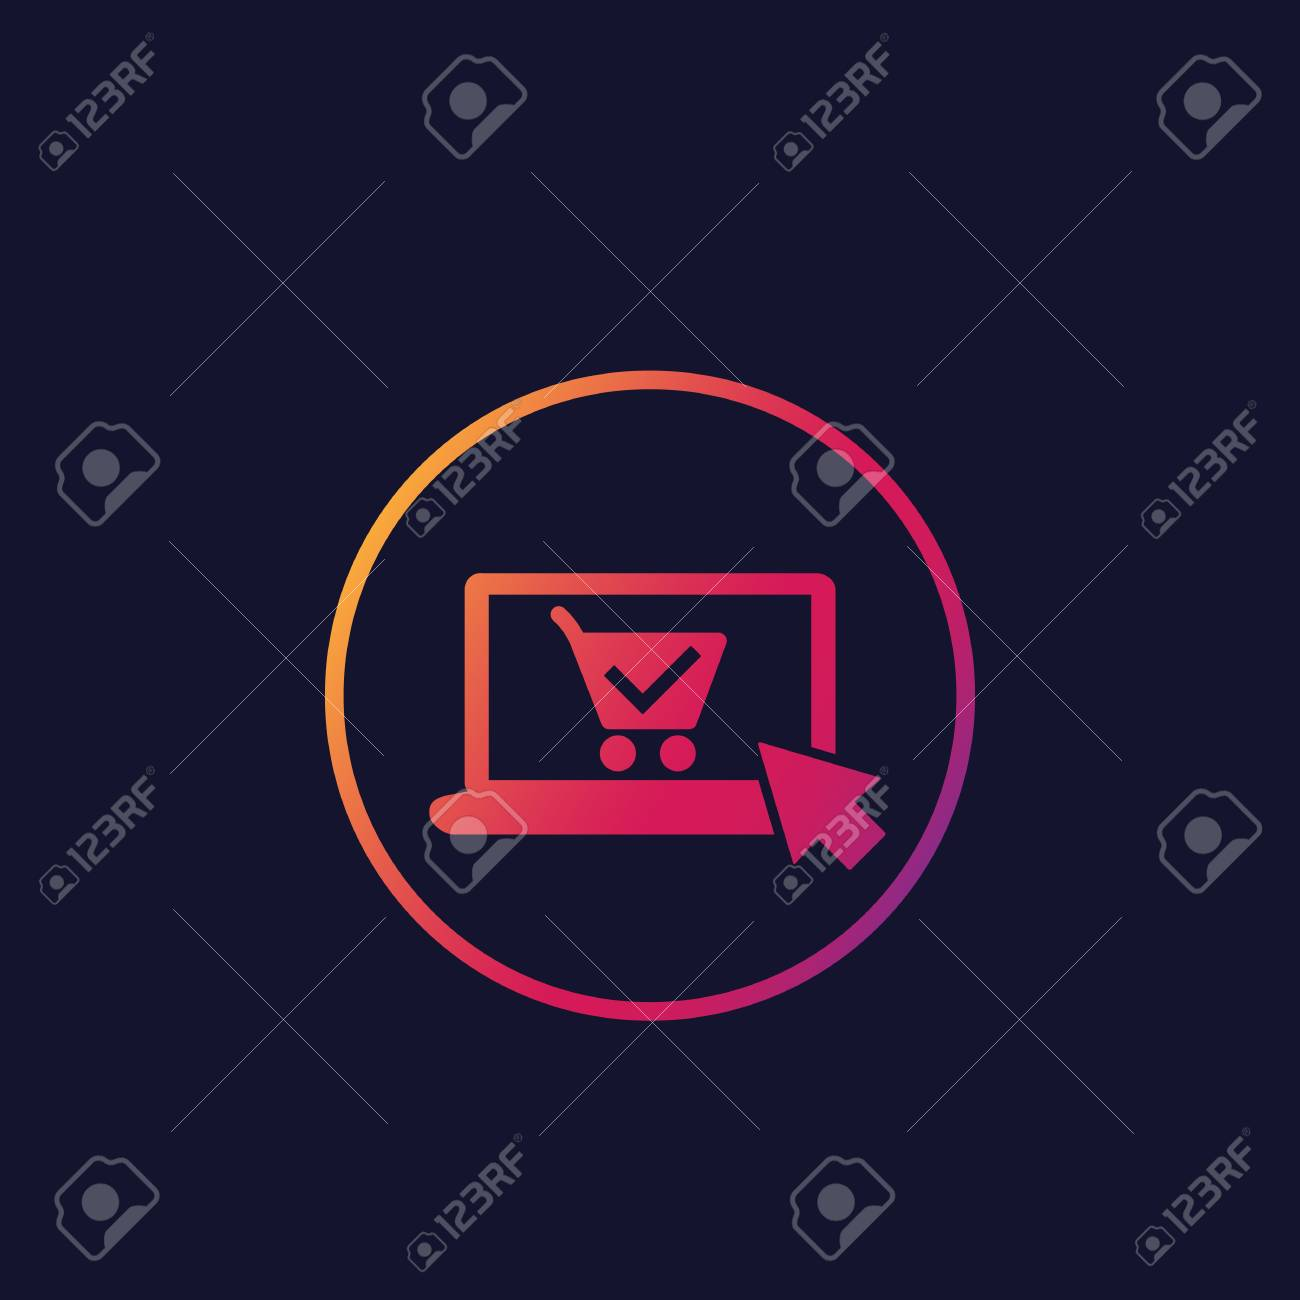 online order, purchase vector icon, laptop and shopping cart - 114178614